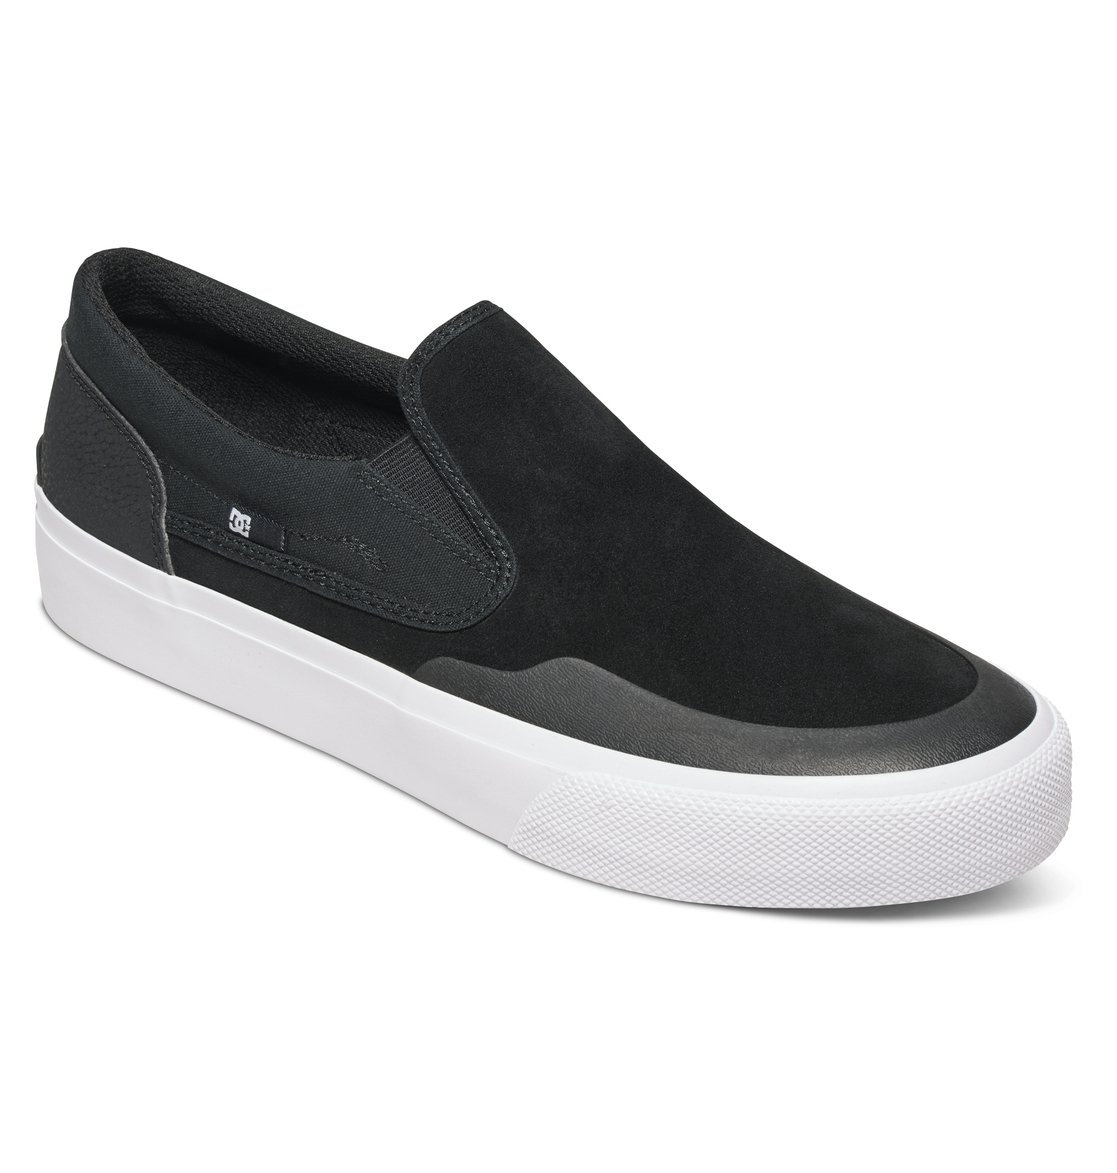 0aac72abdf8 1 Trase S RT - Slip-On Skate Shoes ADYS300357 DC Shoes